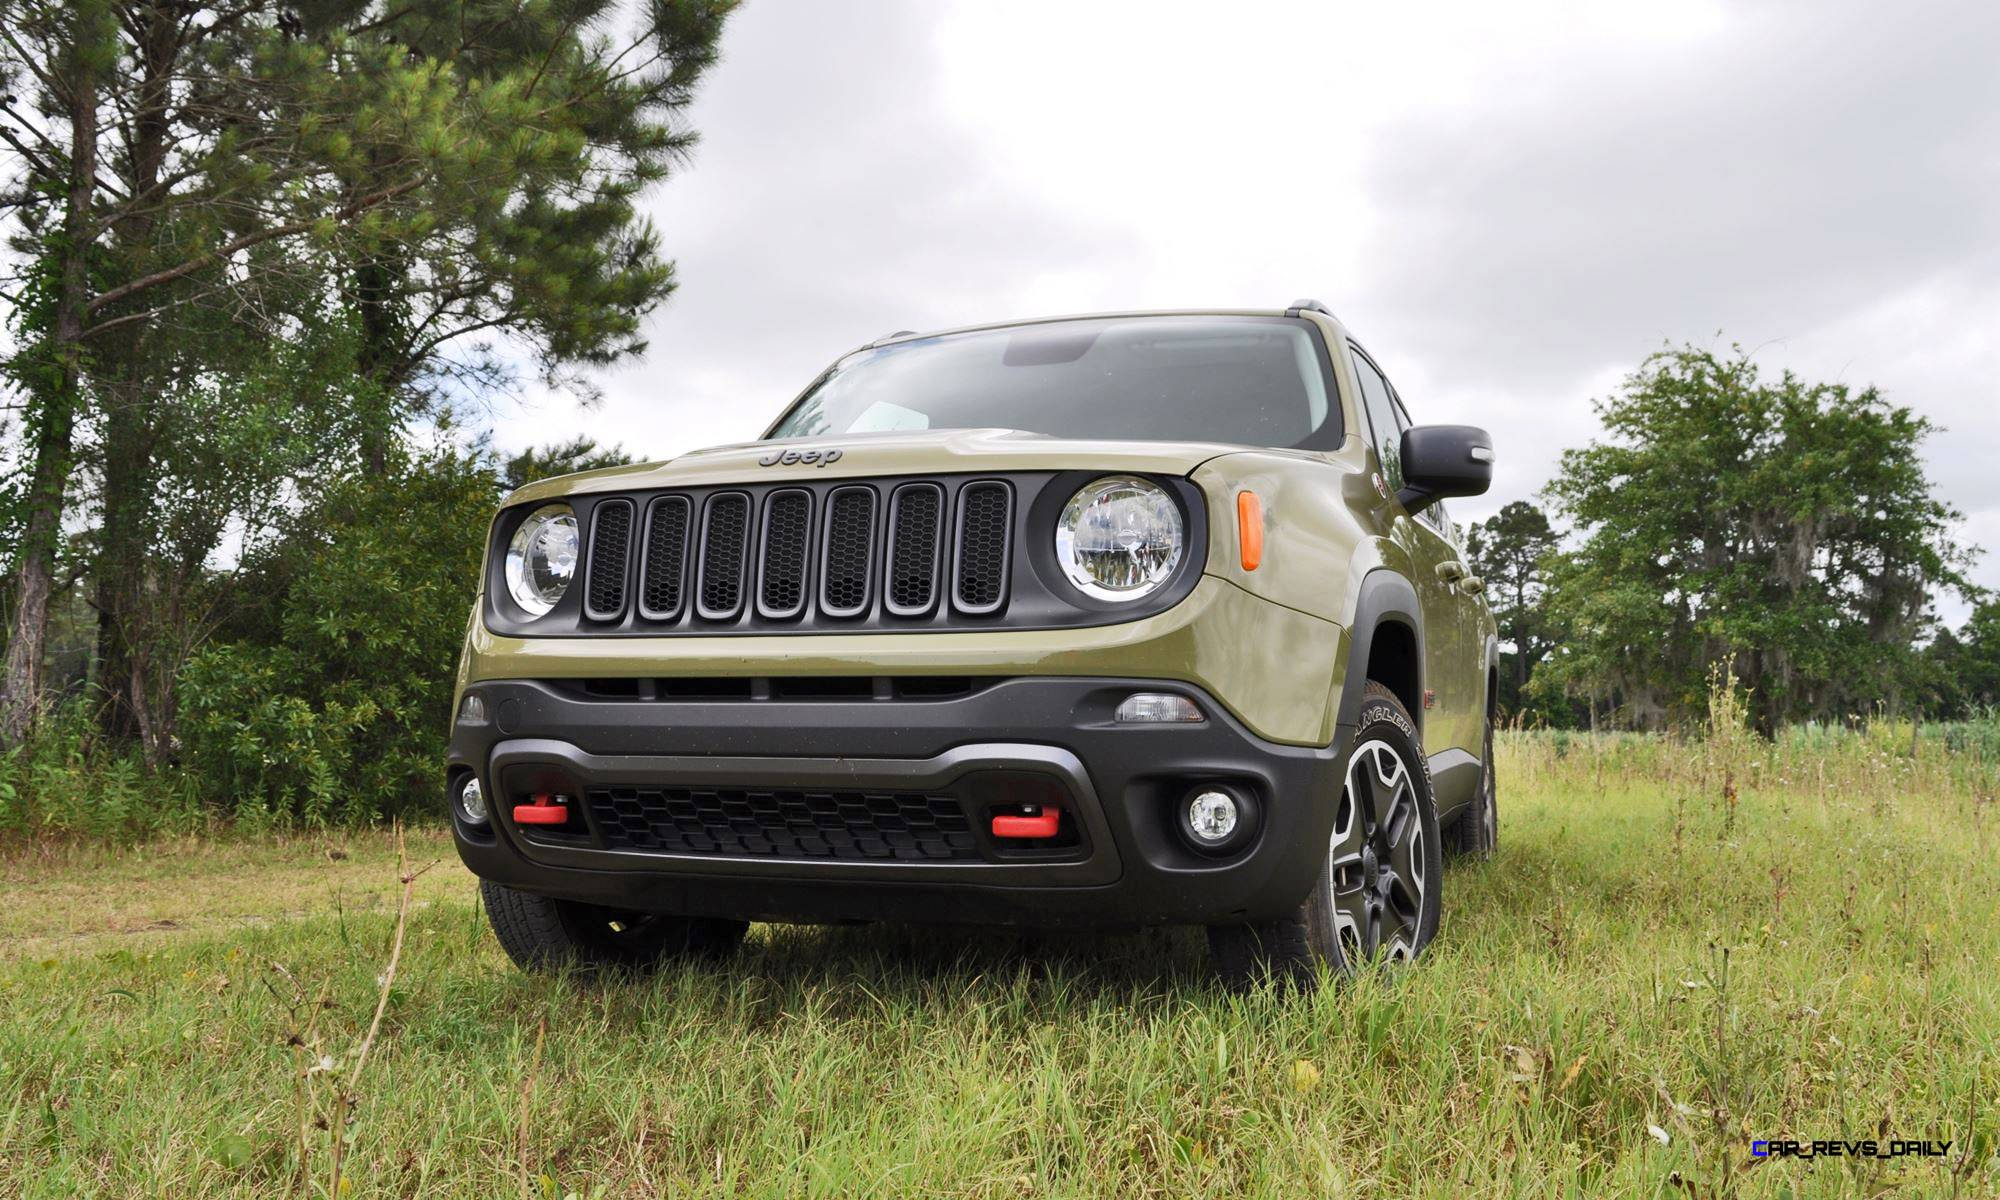 road test review 2016 jeep renegade trailhawk by tim esterdahl car revs. Black Bedroom Furniture Sets. Home Design Ideas